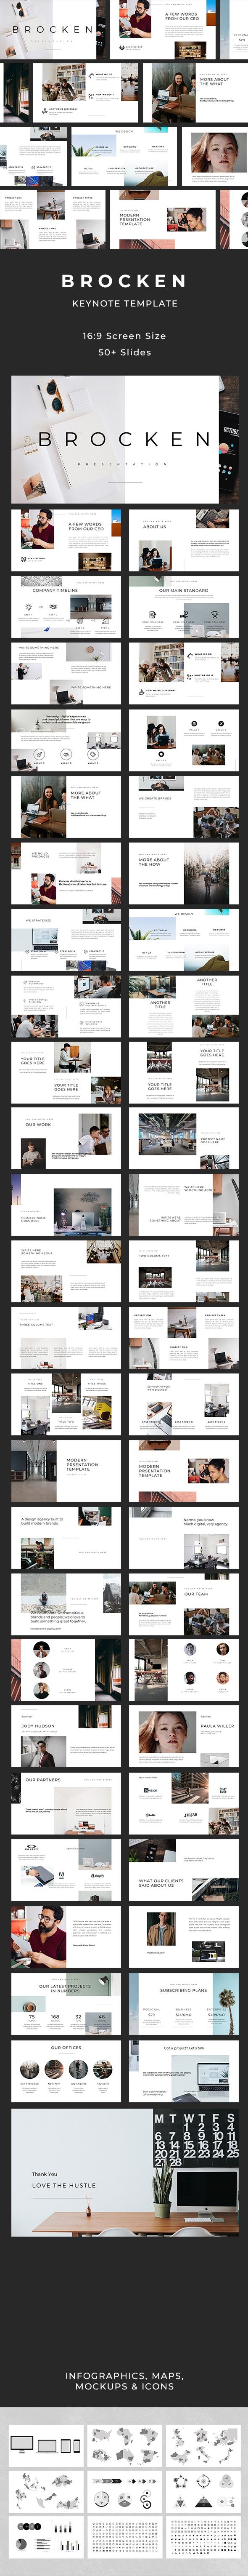 Business Keynote Template - Business Keynote Templates